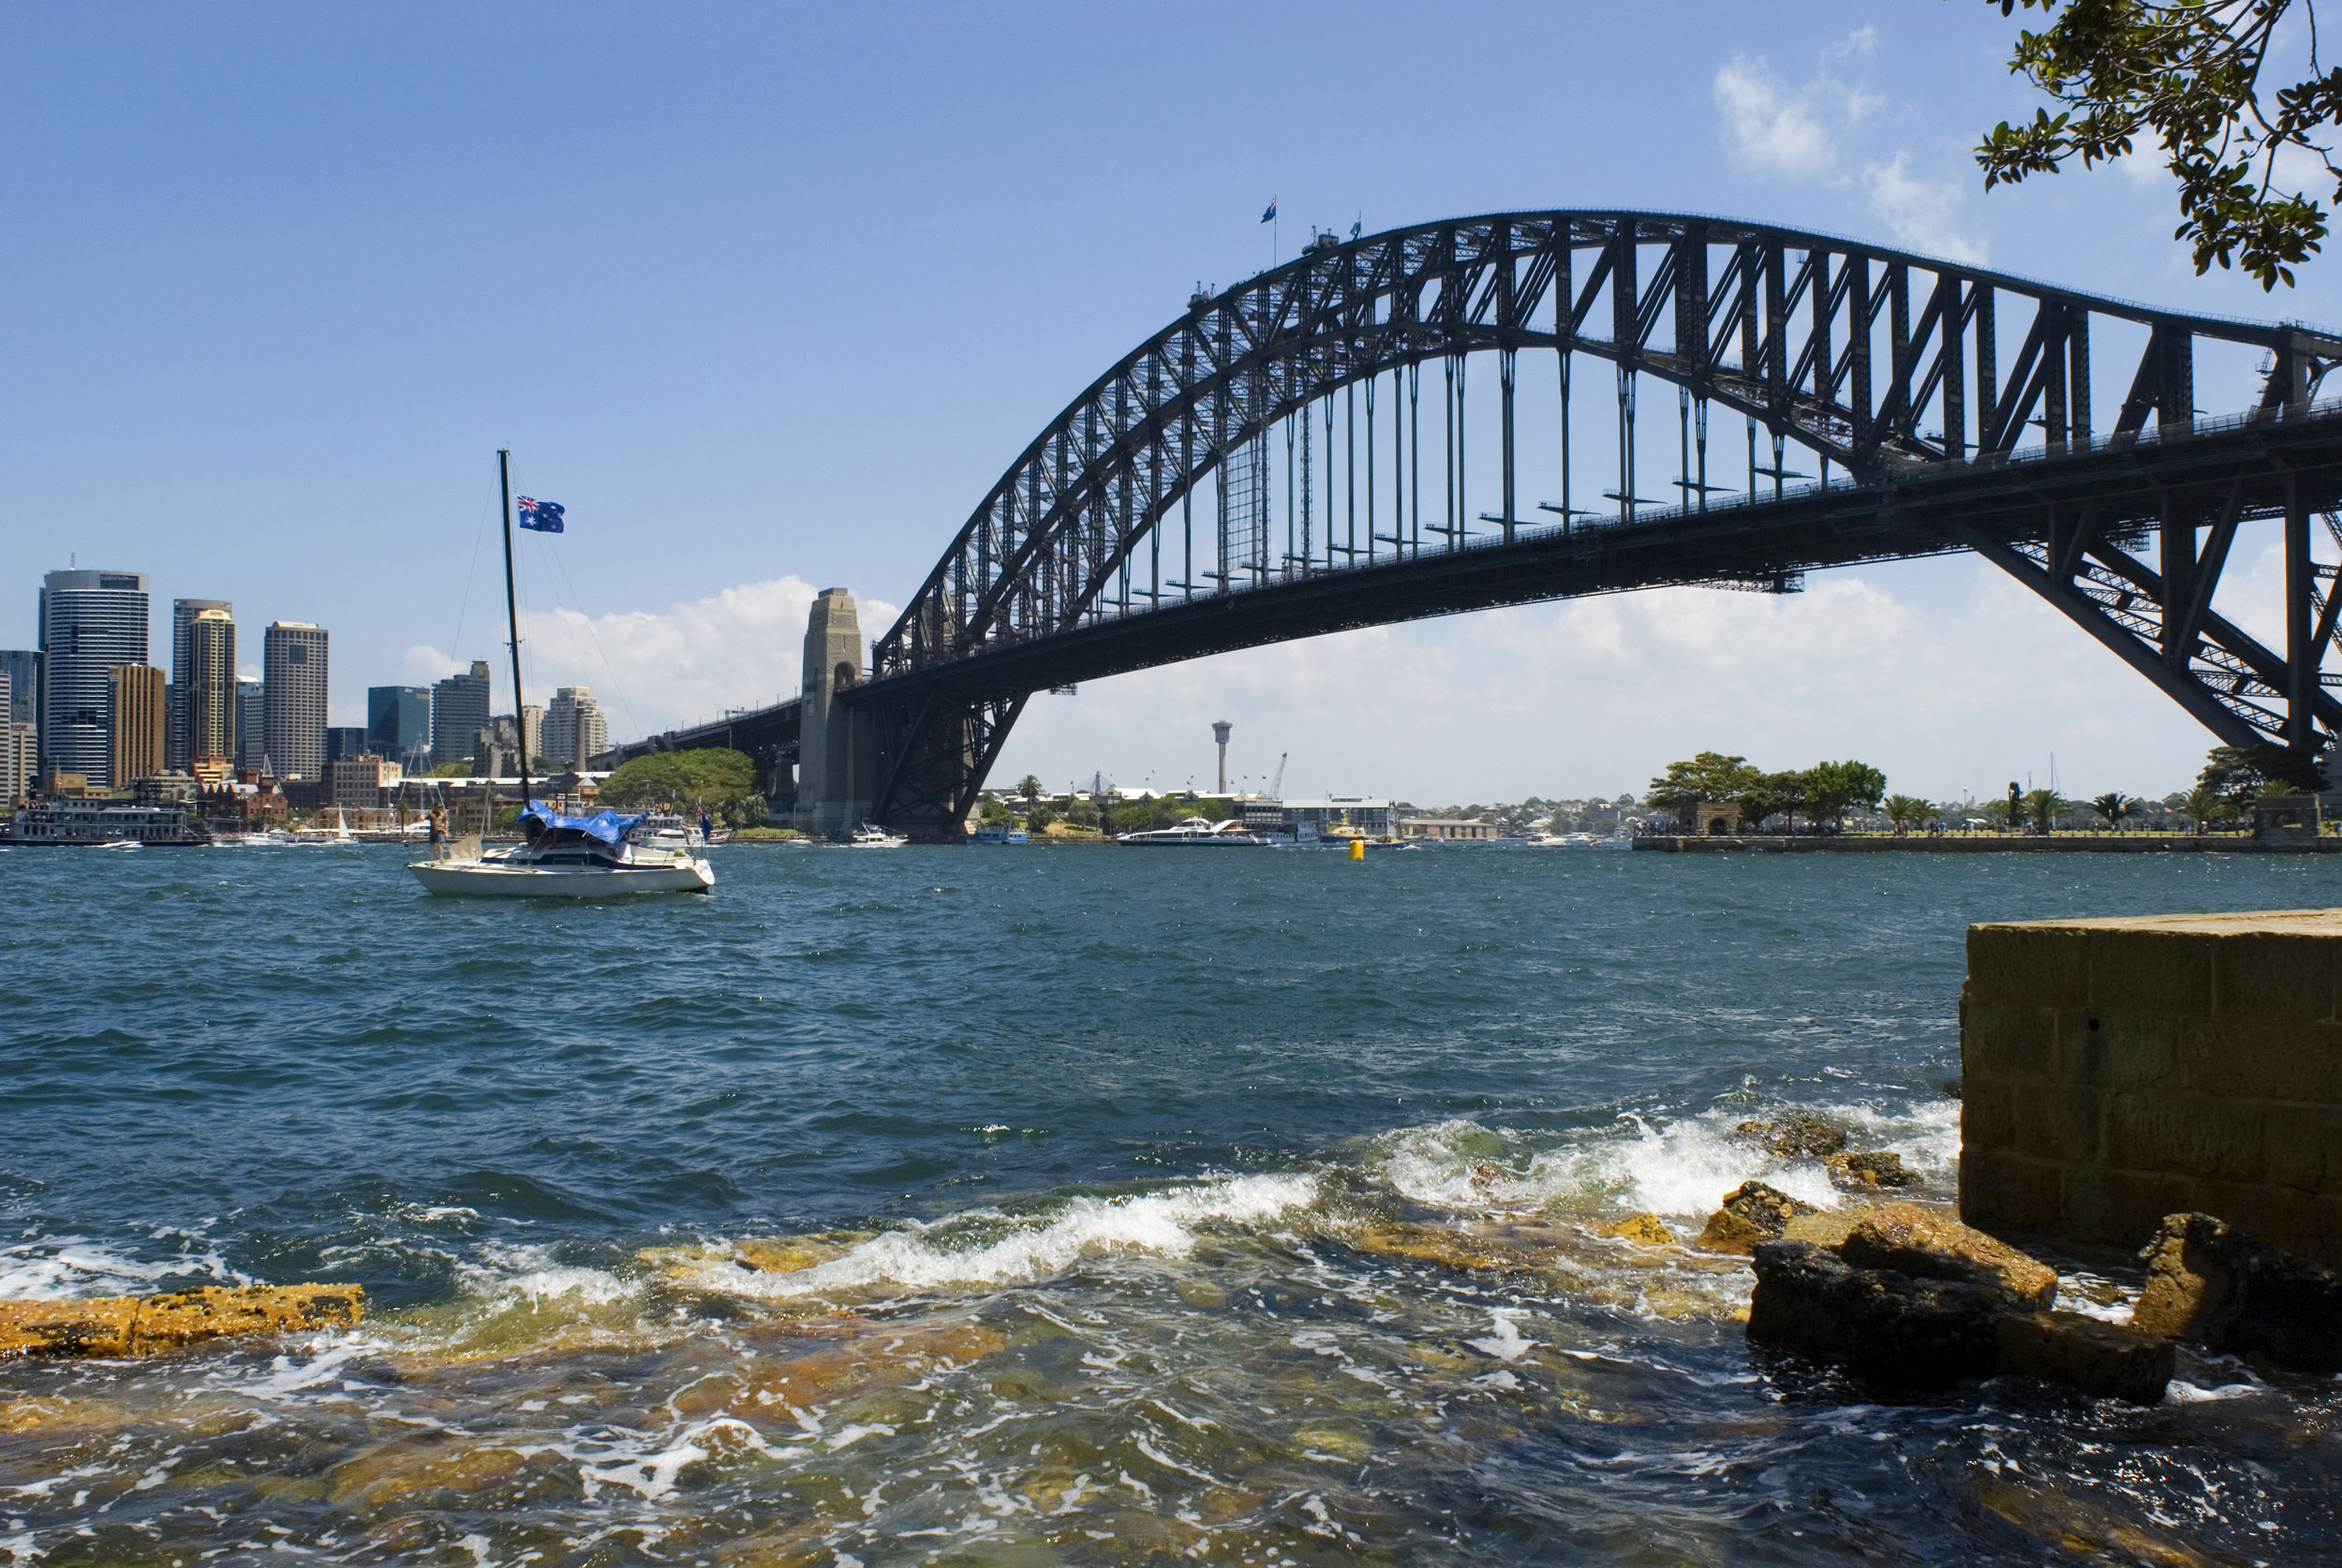 A panoramic view of the Sydney harbour bridge, boats and city on a beautiful, clear, blue sunny day.